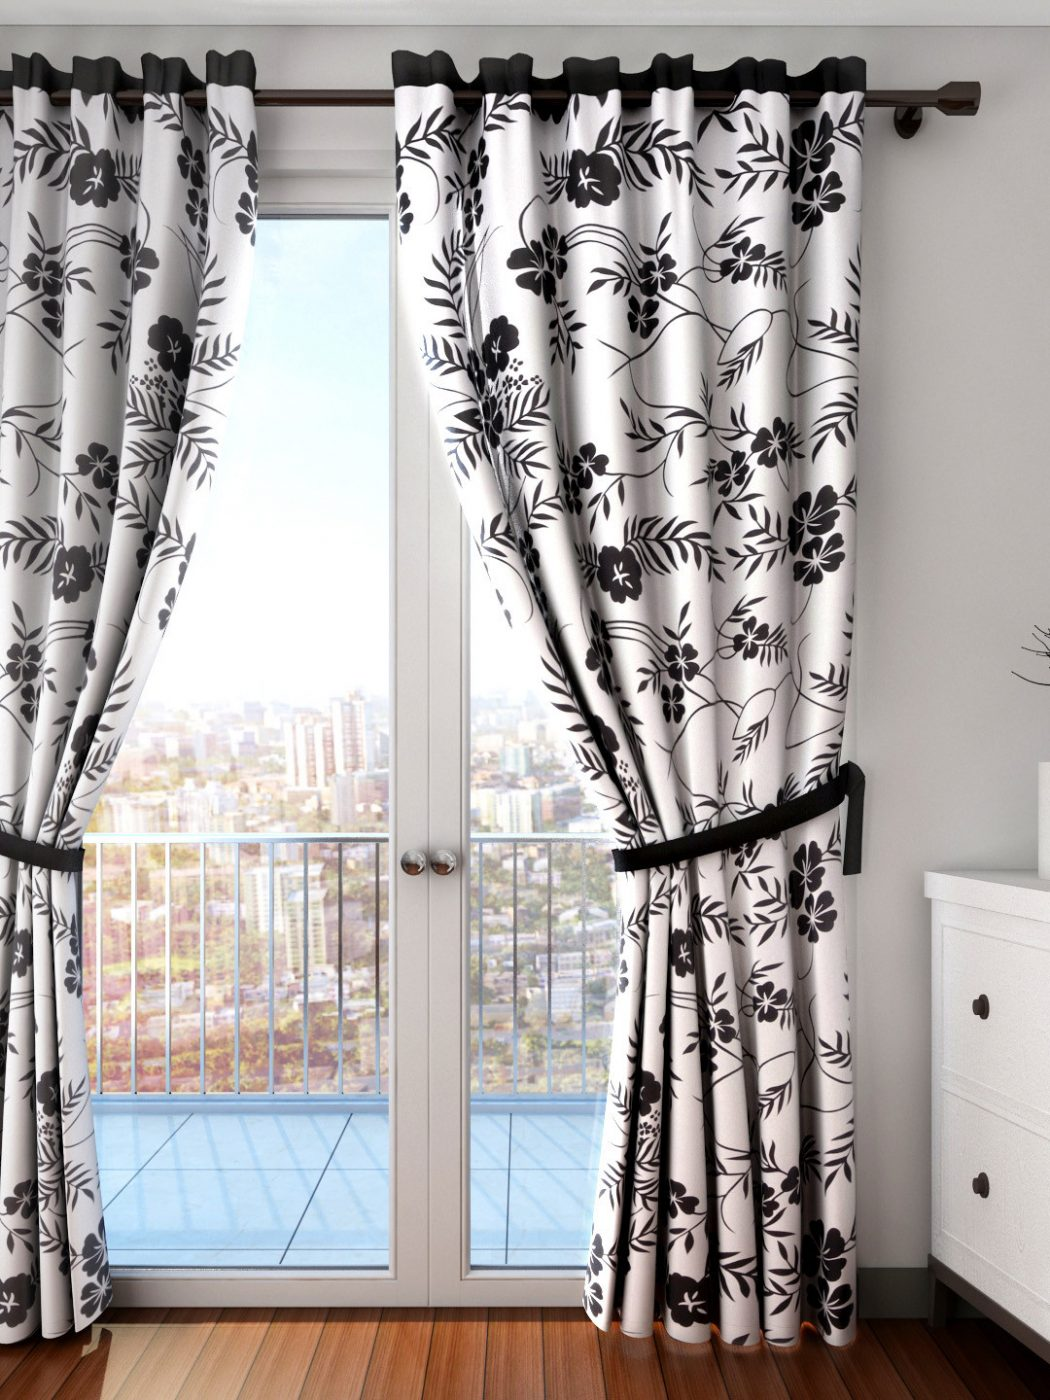 11465451719574-SWAYAM-White-Black-Single-Floral-Print-Long-Door-Curtain-7831465451719436-1 20+ Hottest Curtain Design Ideas for 2021